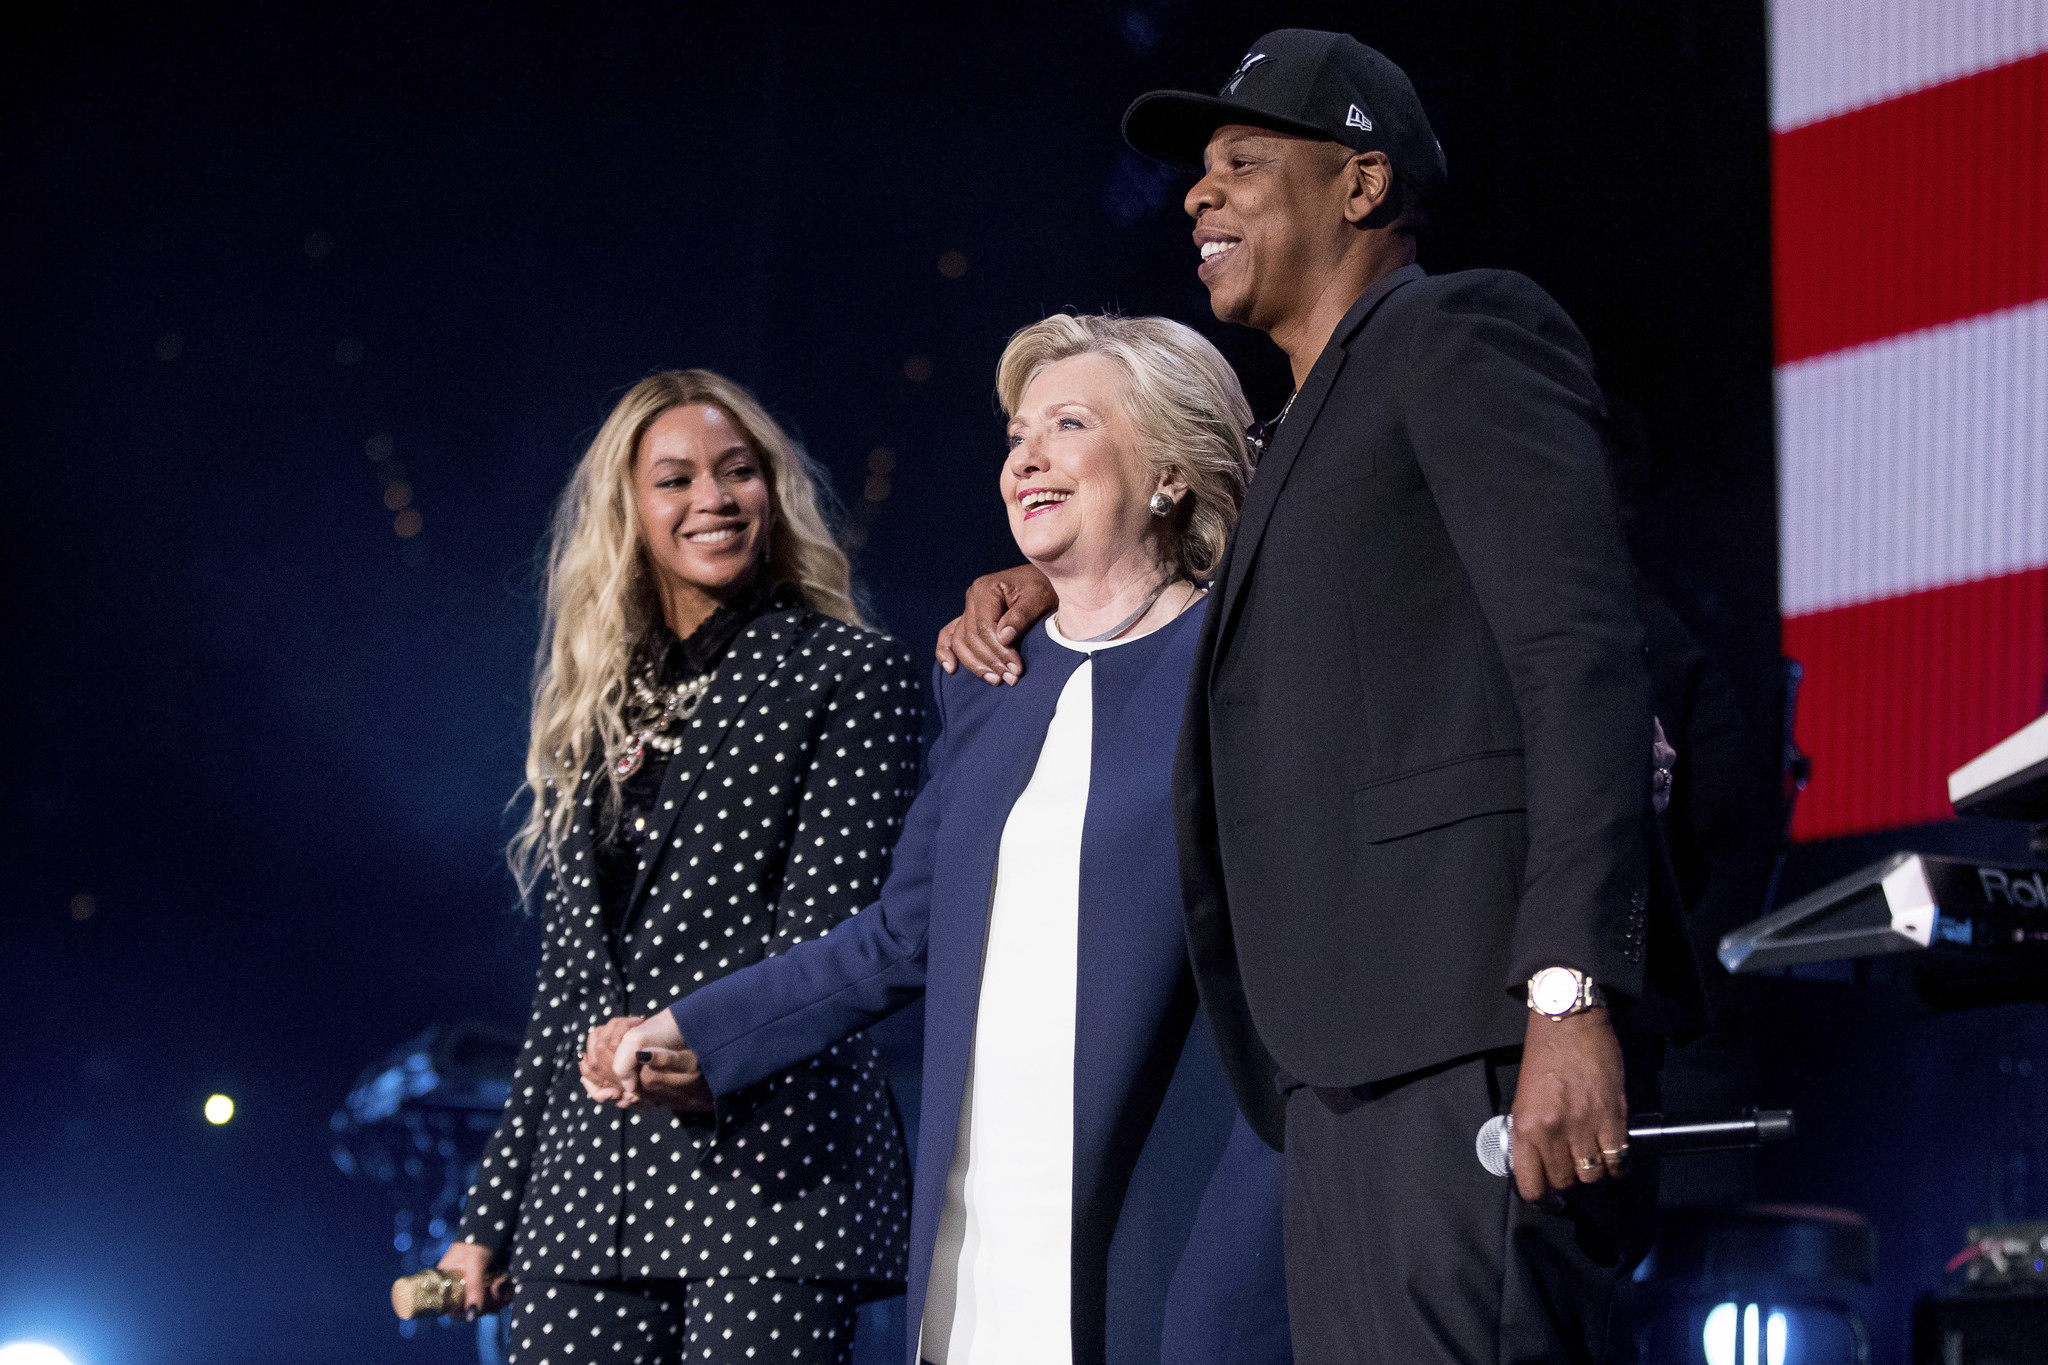 Clinton with Beyonc and Jay Z during a free concert at at the Wolstein Center in Cleveland on Nov. 4.